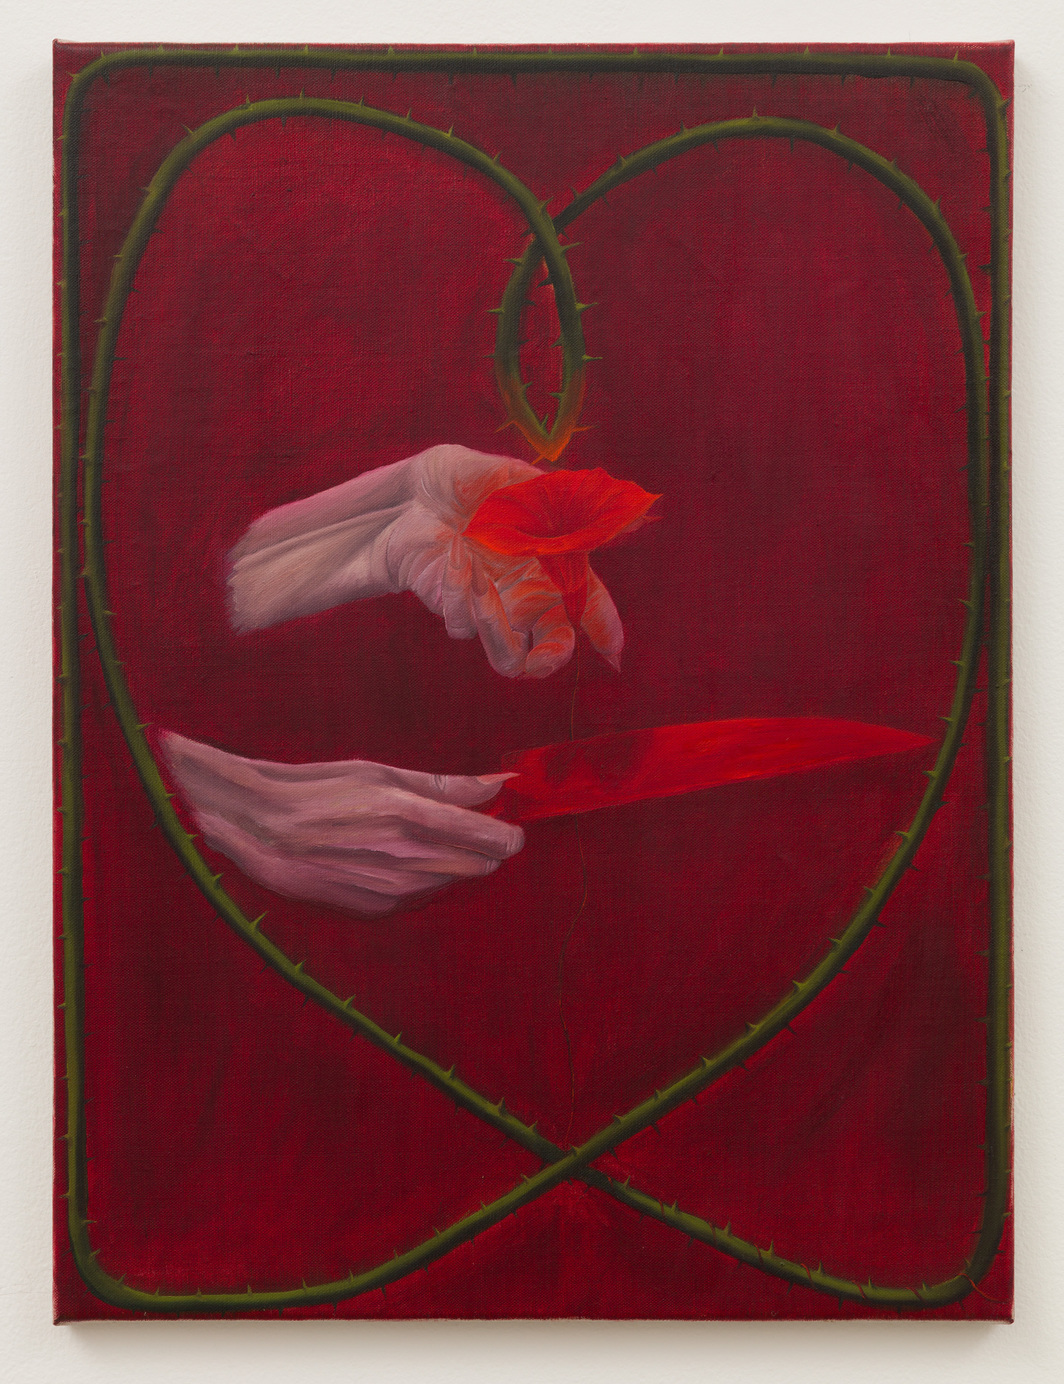 "Srijon Chowdhury, Red Morning Glory, Red Knife, 2019, oil on linen, 24 x 18""."